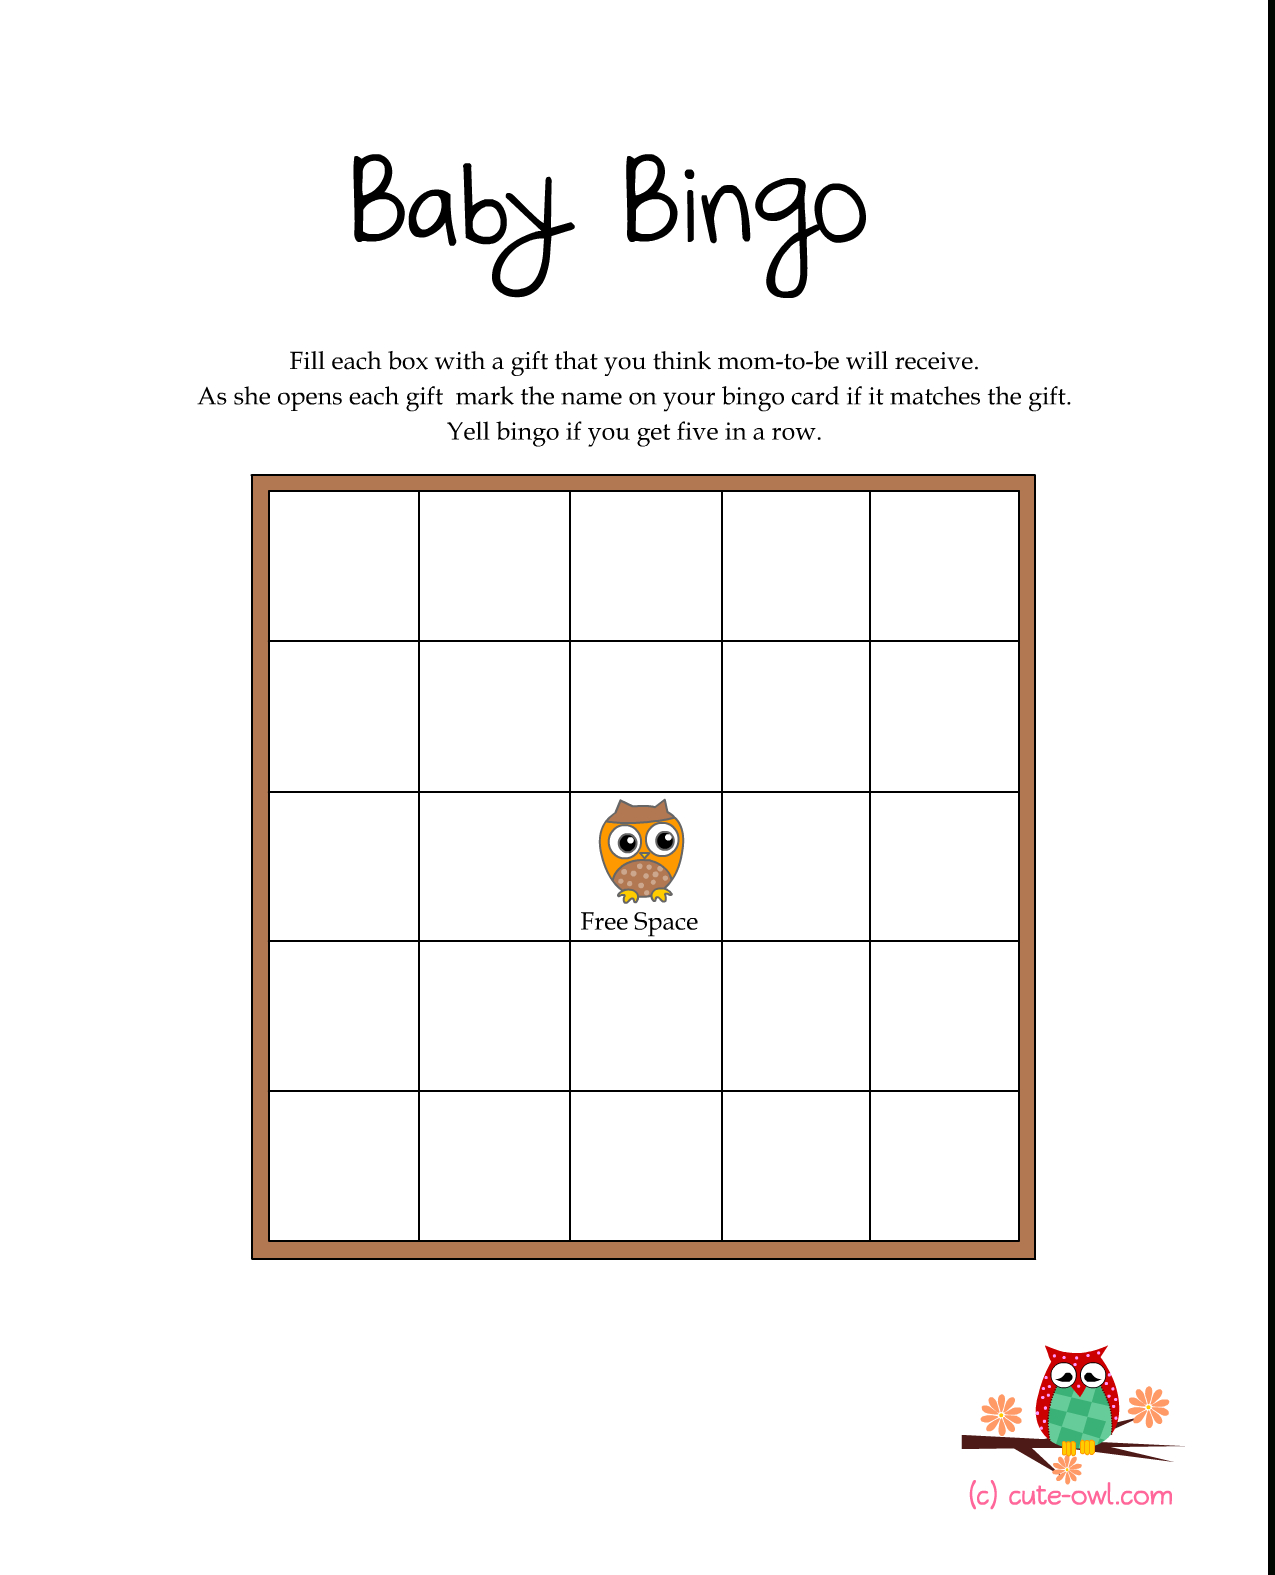 Free Printable Owl Themed Baby Shower Games | Woodland Animal Themed - Baby Bingo Game Free Printable